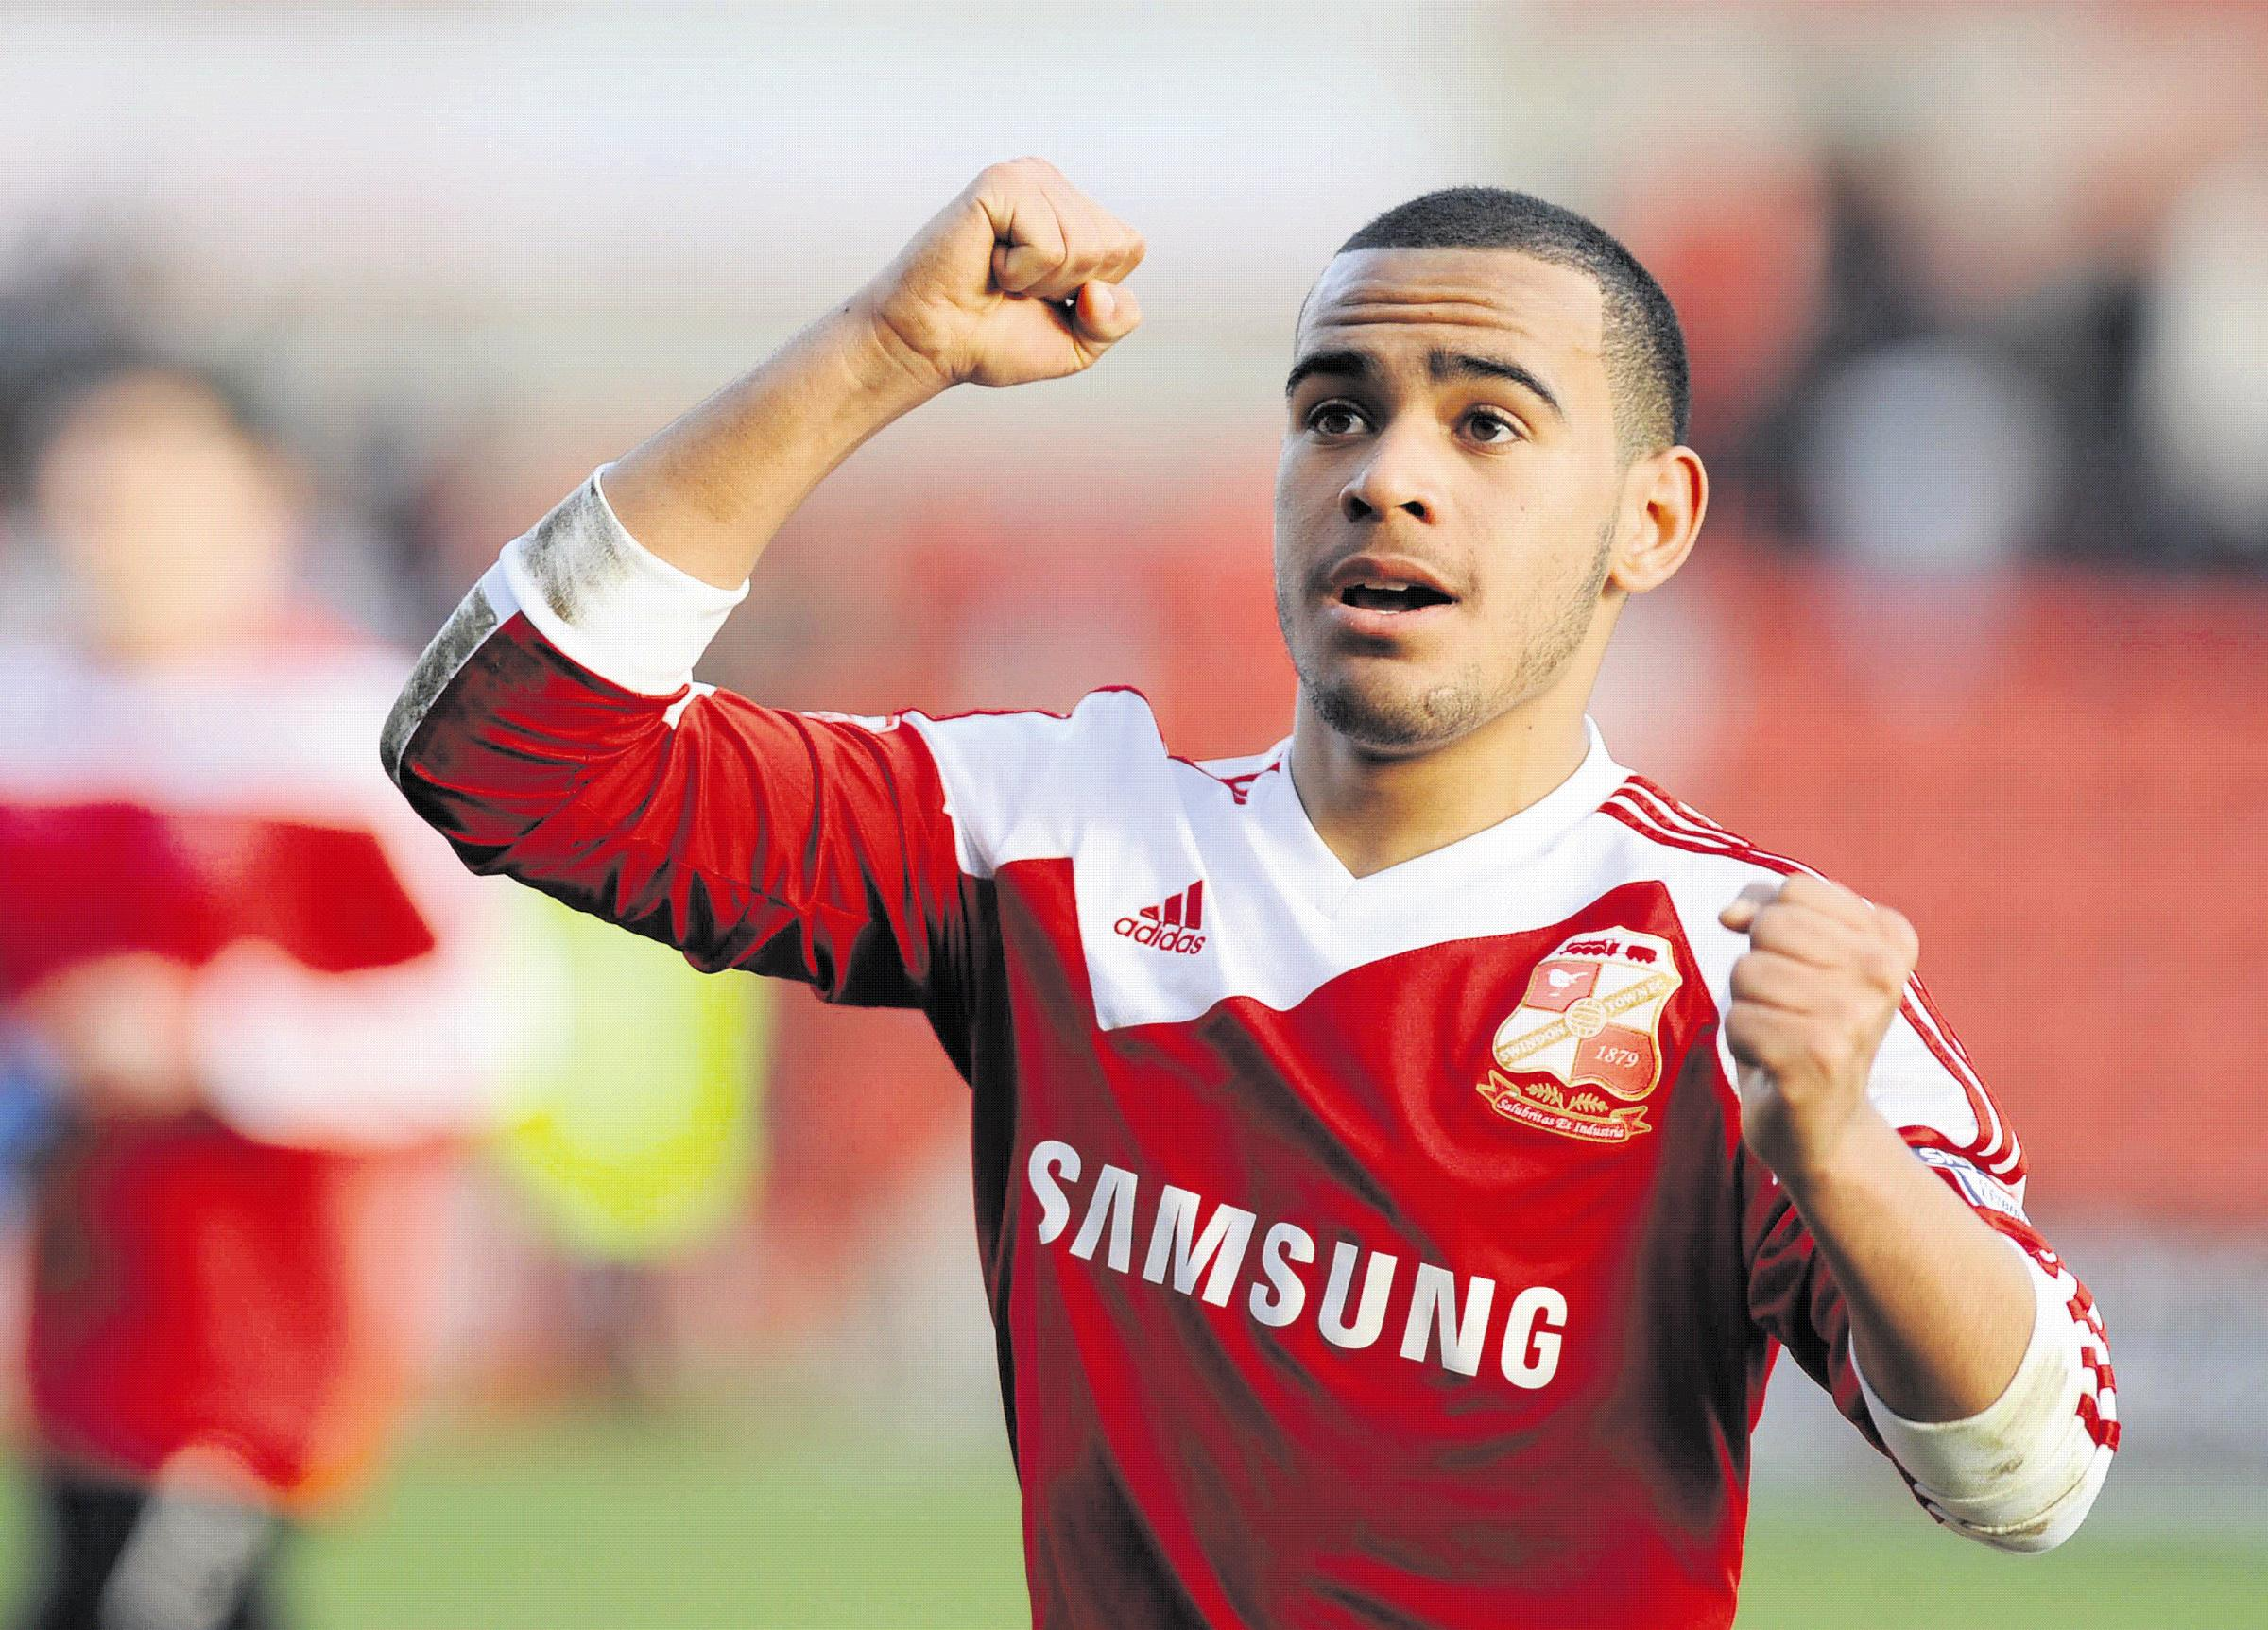 Louis Thompson scored Swindon's first goal against Brighton